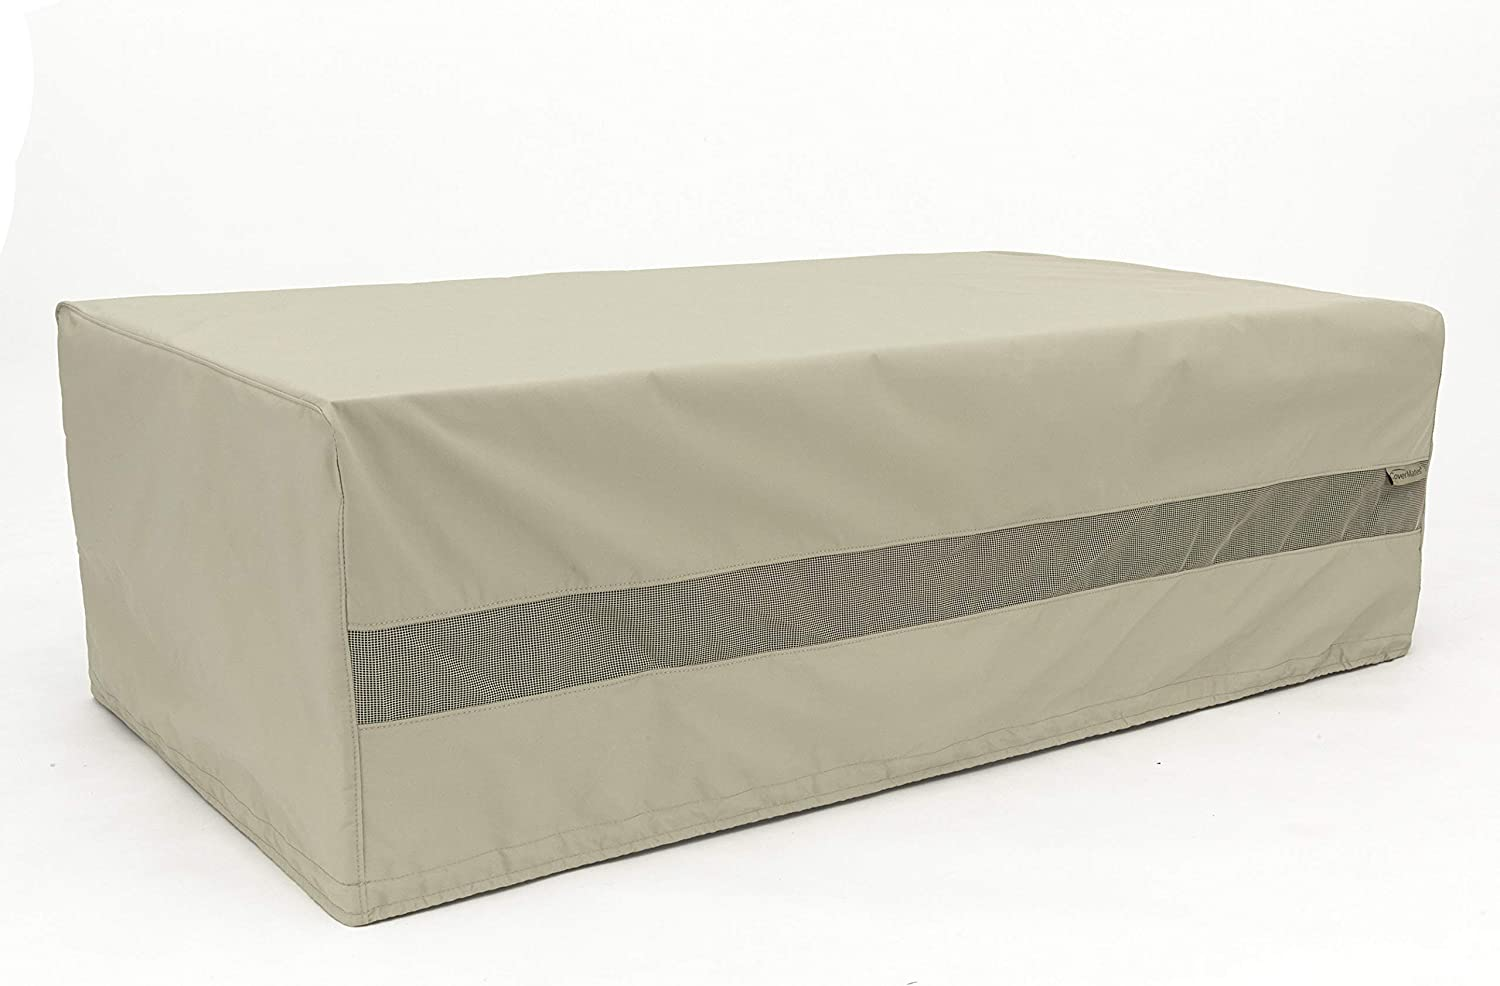 300D Stock-Dyed Polyester Elite 3 YR Warranty Charcoal Locking Drawcord Weather Resistant Deck Box Cover Double Stitched Seams Covermates 26W x 26D x 25H